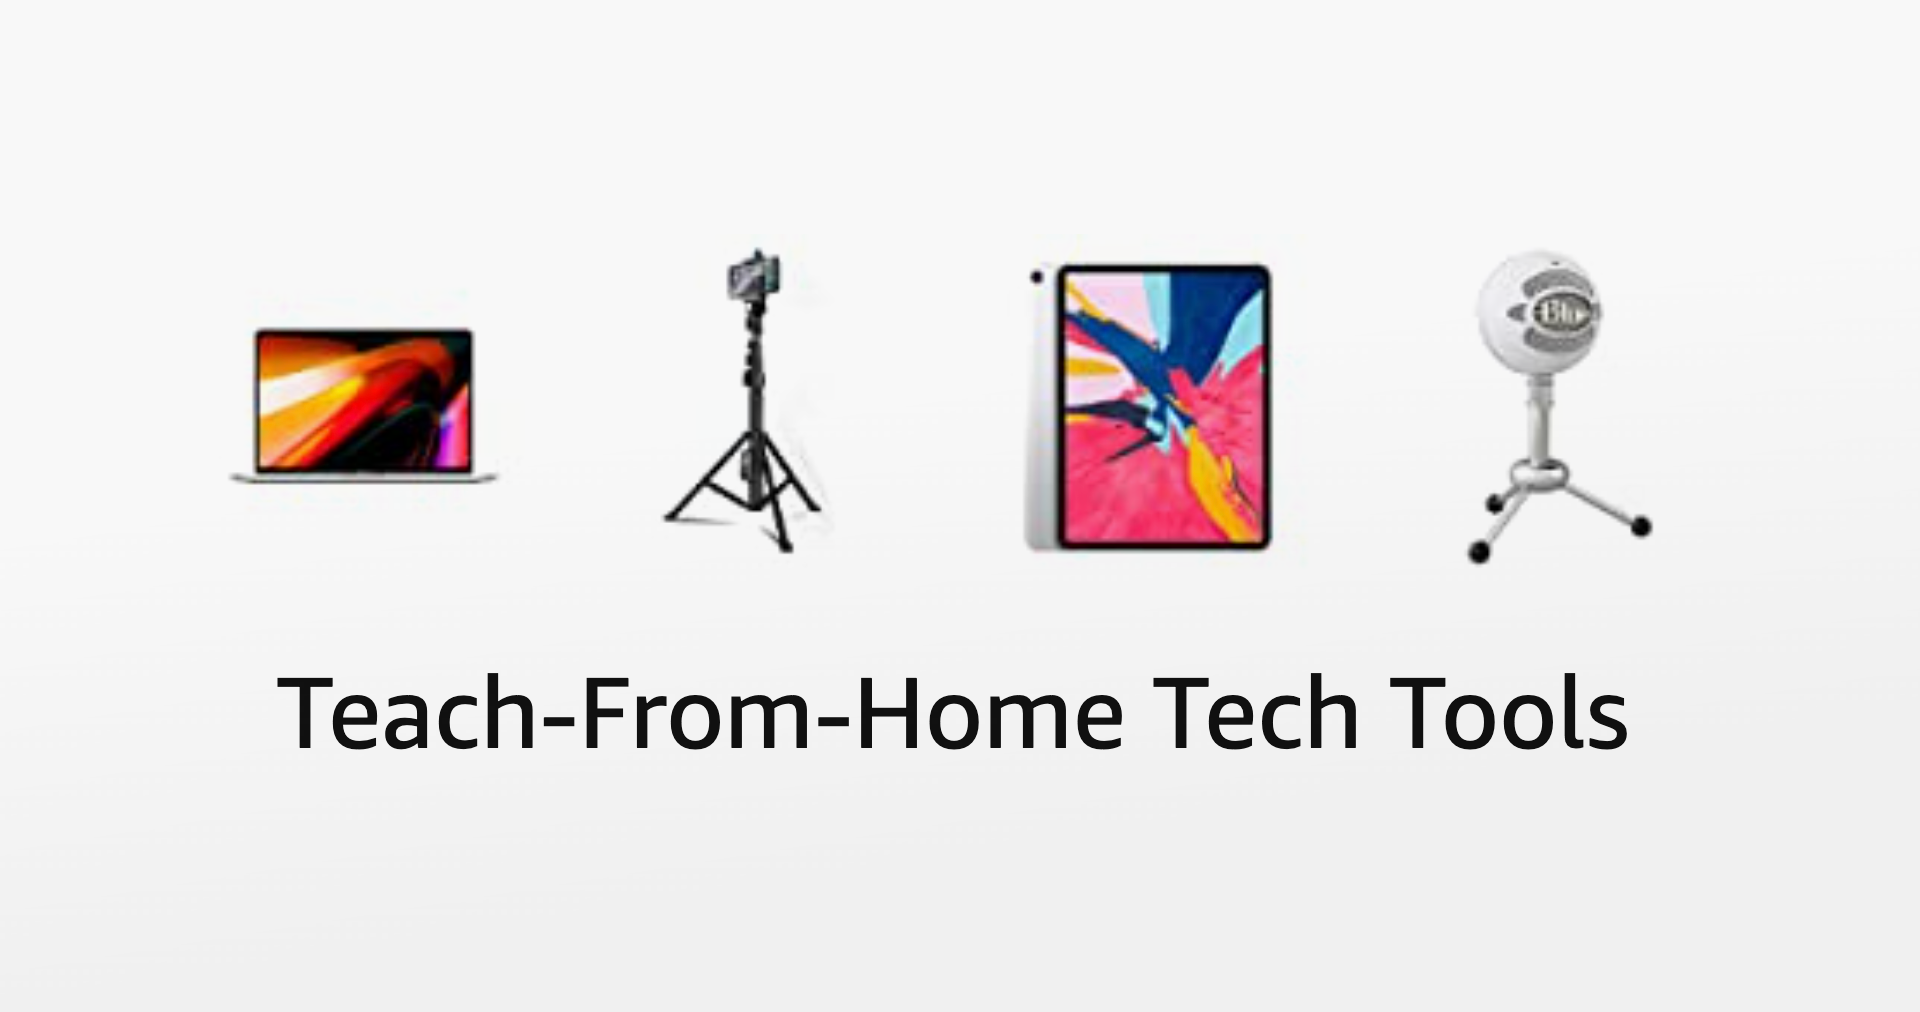 Teach-From-Home Tech Tools